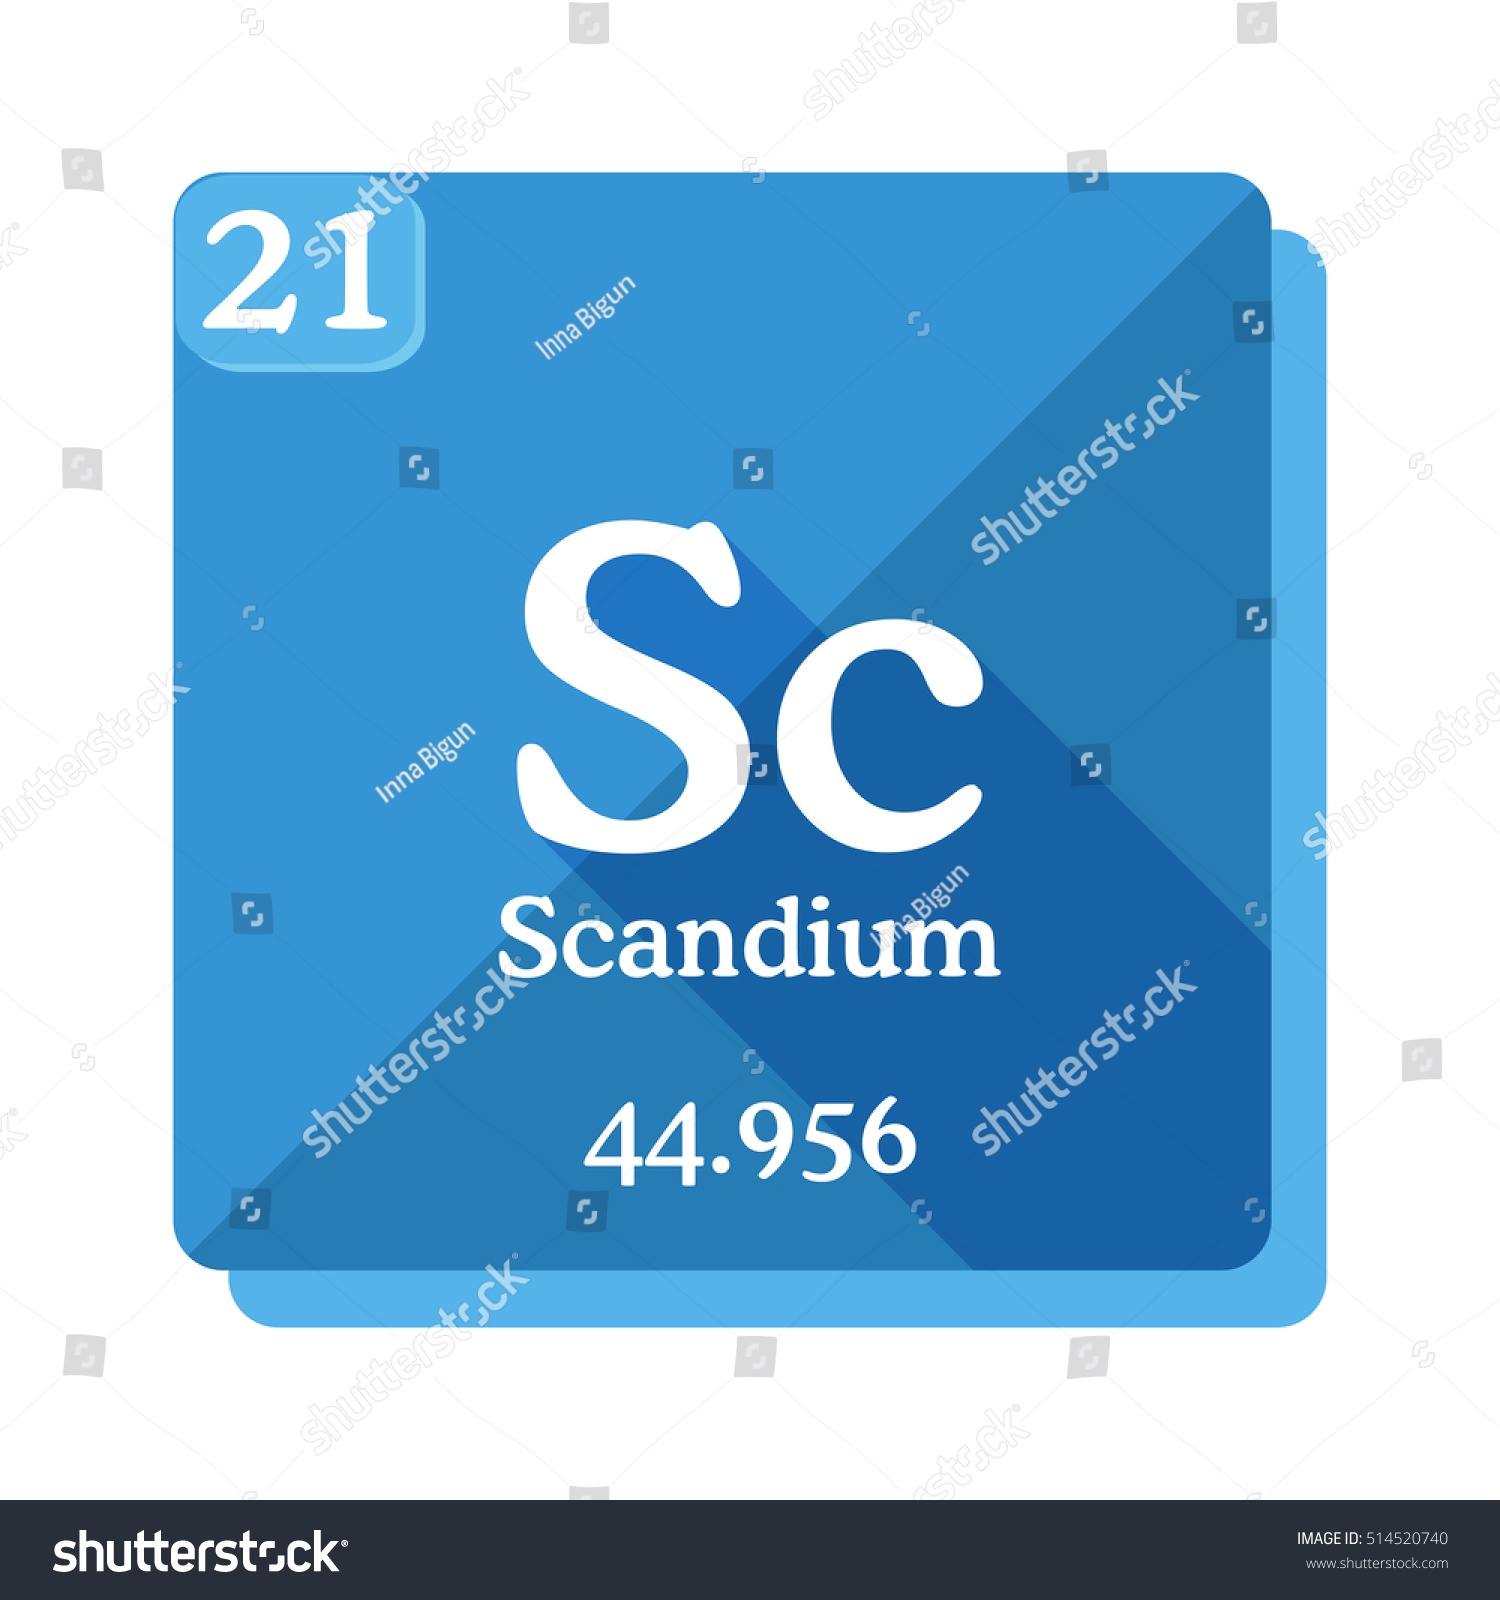 Scandium sc element periodic table flat stock vector 514520740 scandium sc element of the periodic table flat icon with long shadow gamestrikefo Images